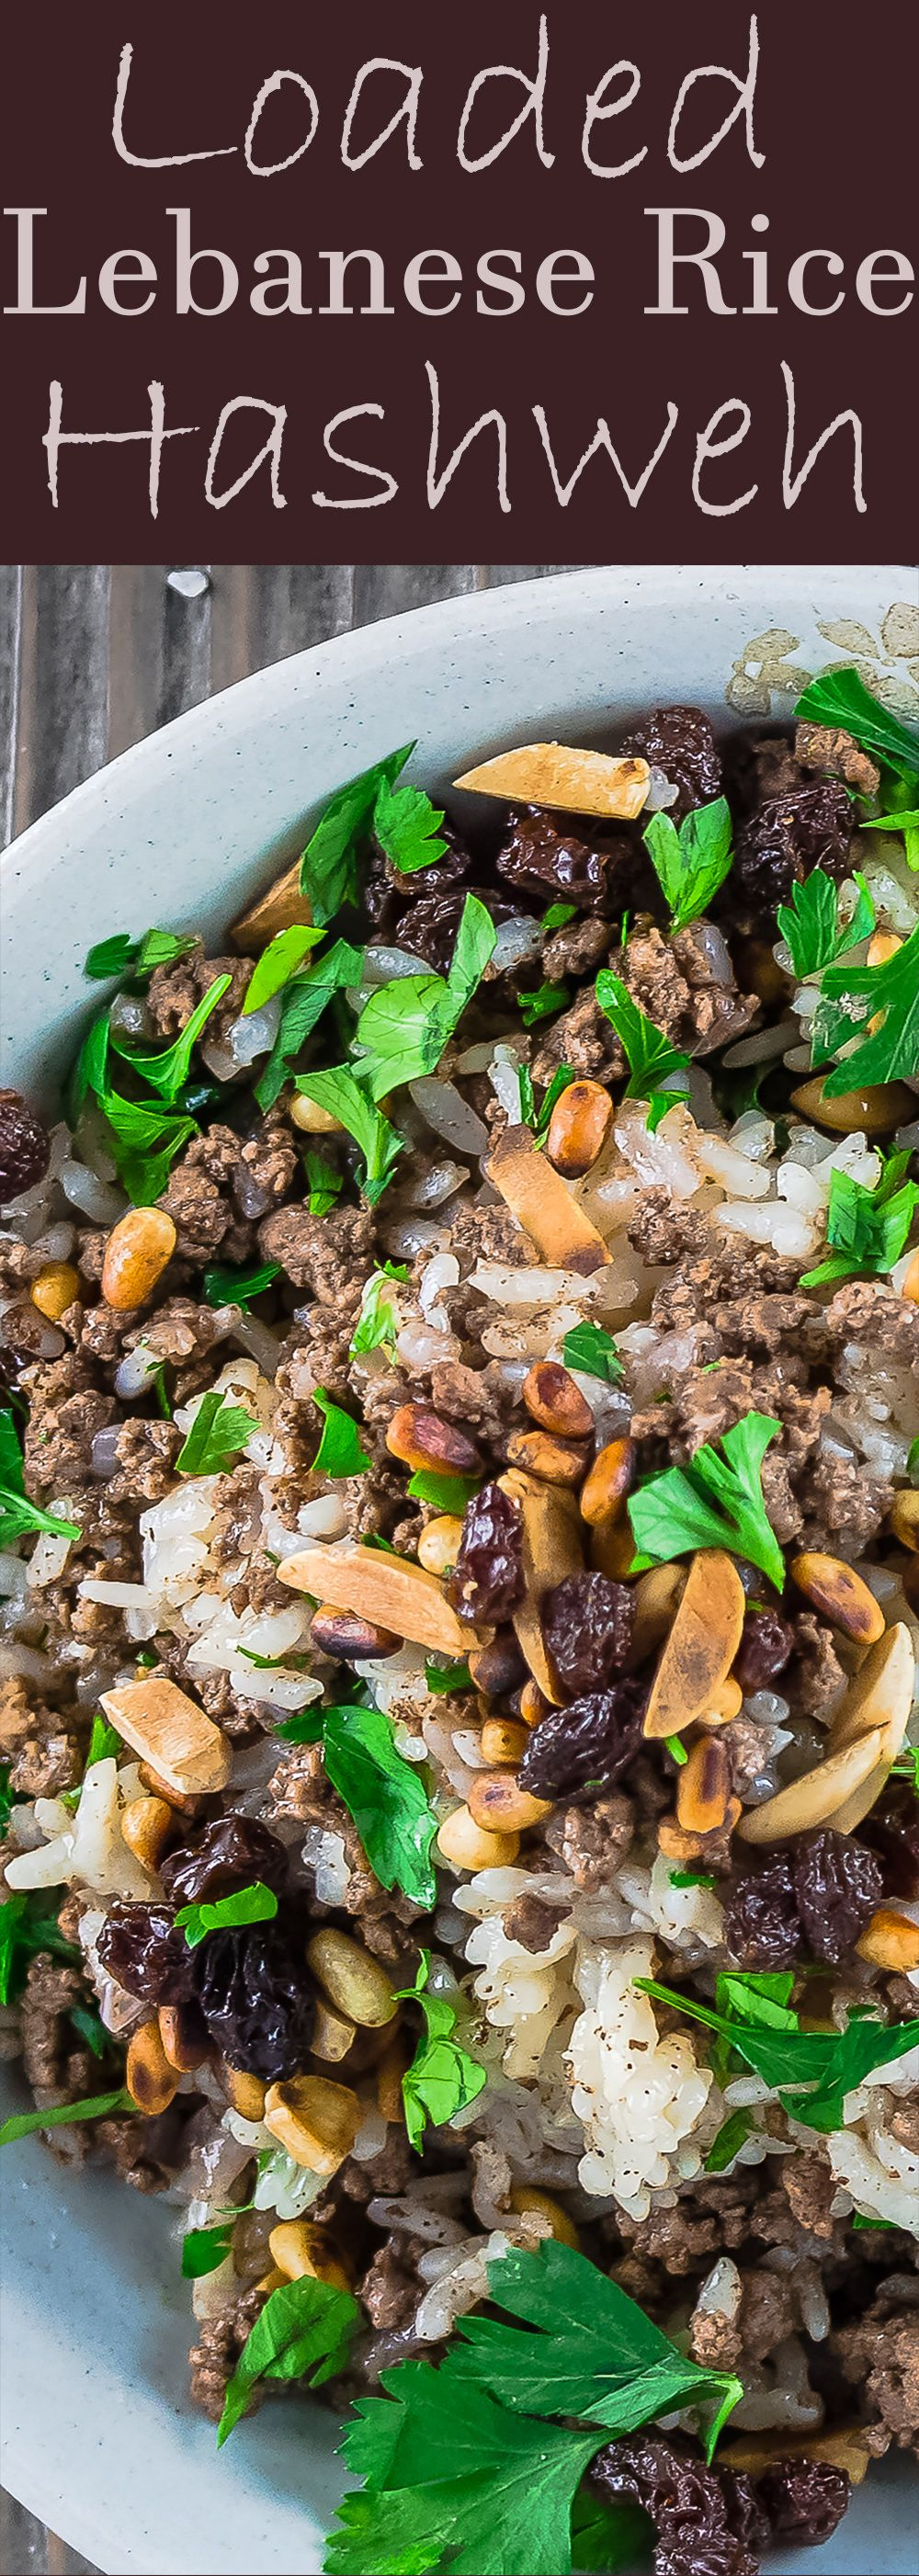 Lebanese Rice Hashweh The Mediterranean Dish Easy Flavorful Loaded Lebanese Rice With Ground Lebanese Recipes Mediterranean Recipes Mediterranean Dishes